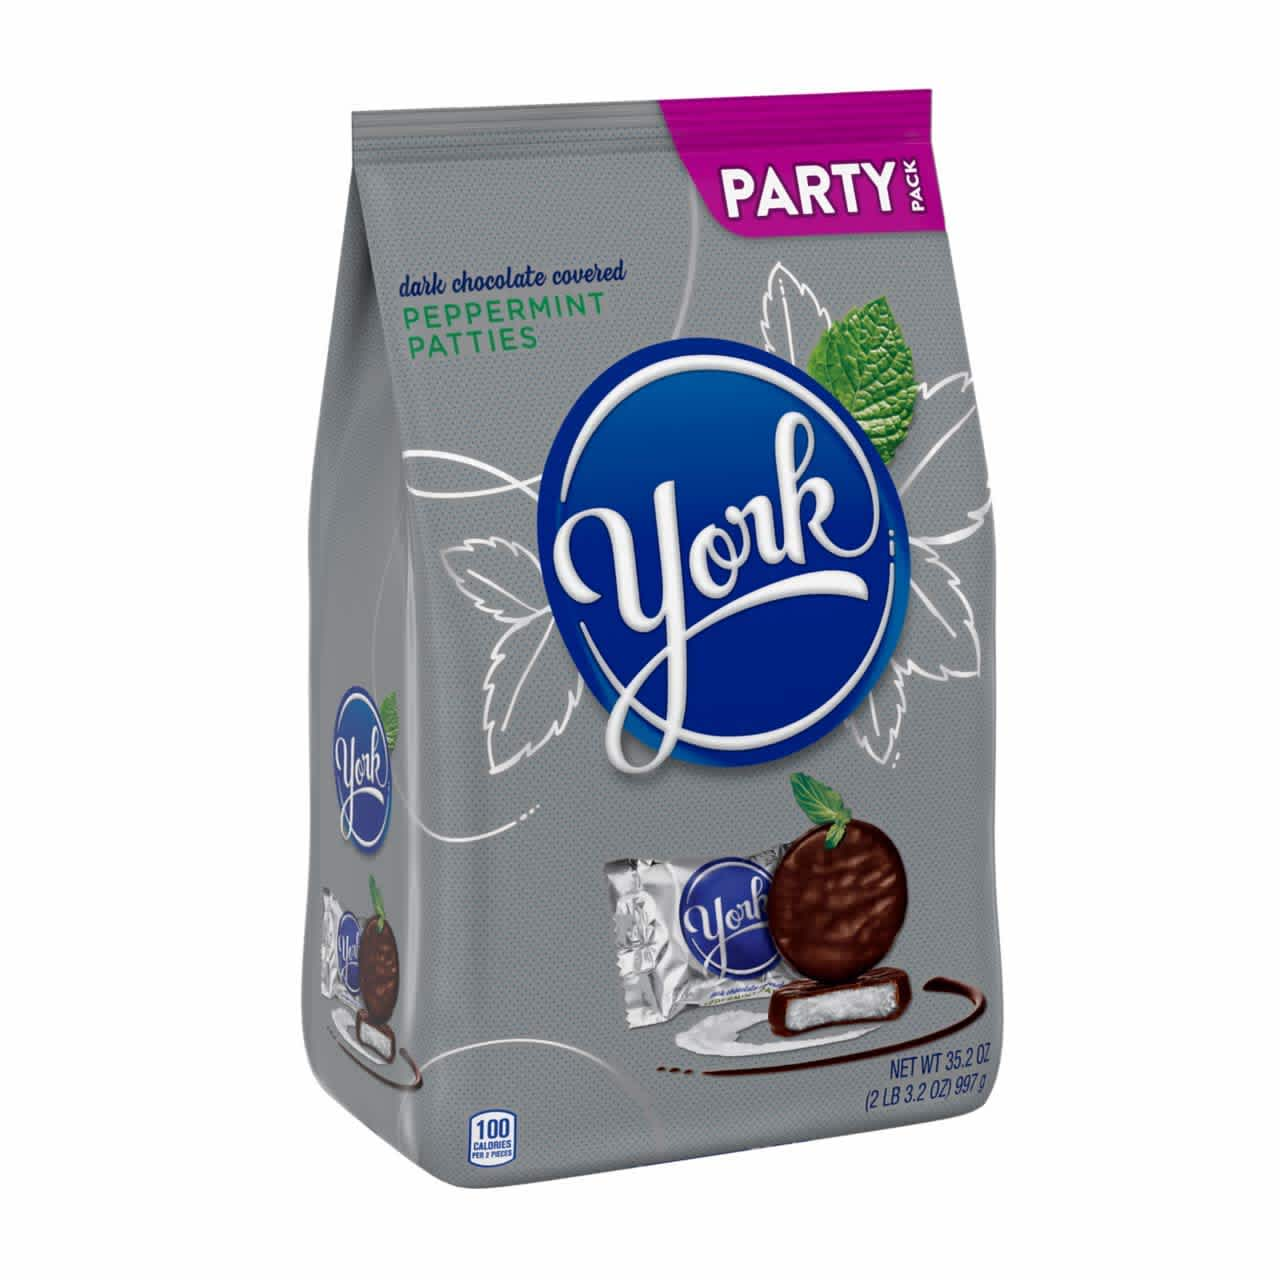 York Dark Chocolate Peppermint Candy Patties 35.2-oz. Bag